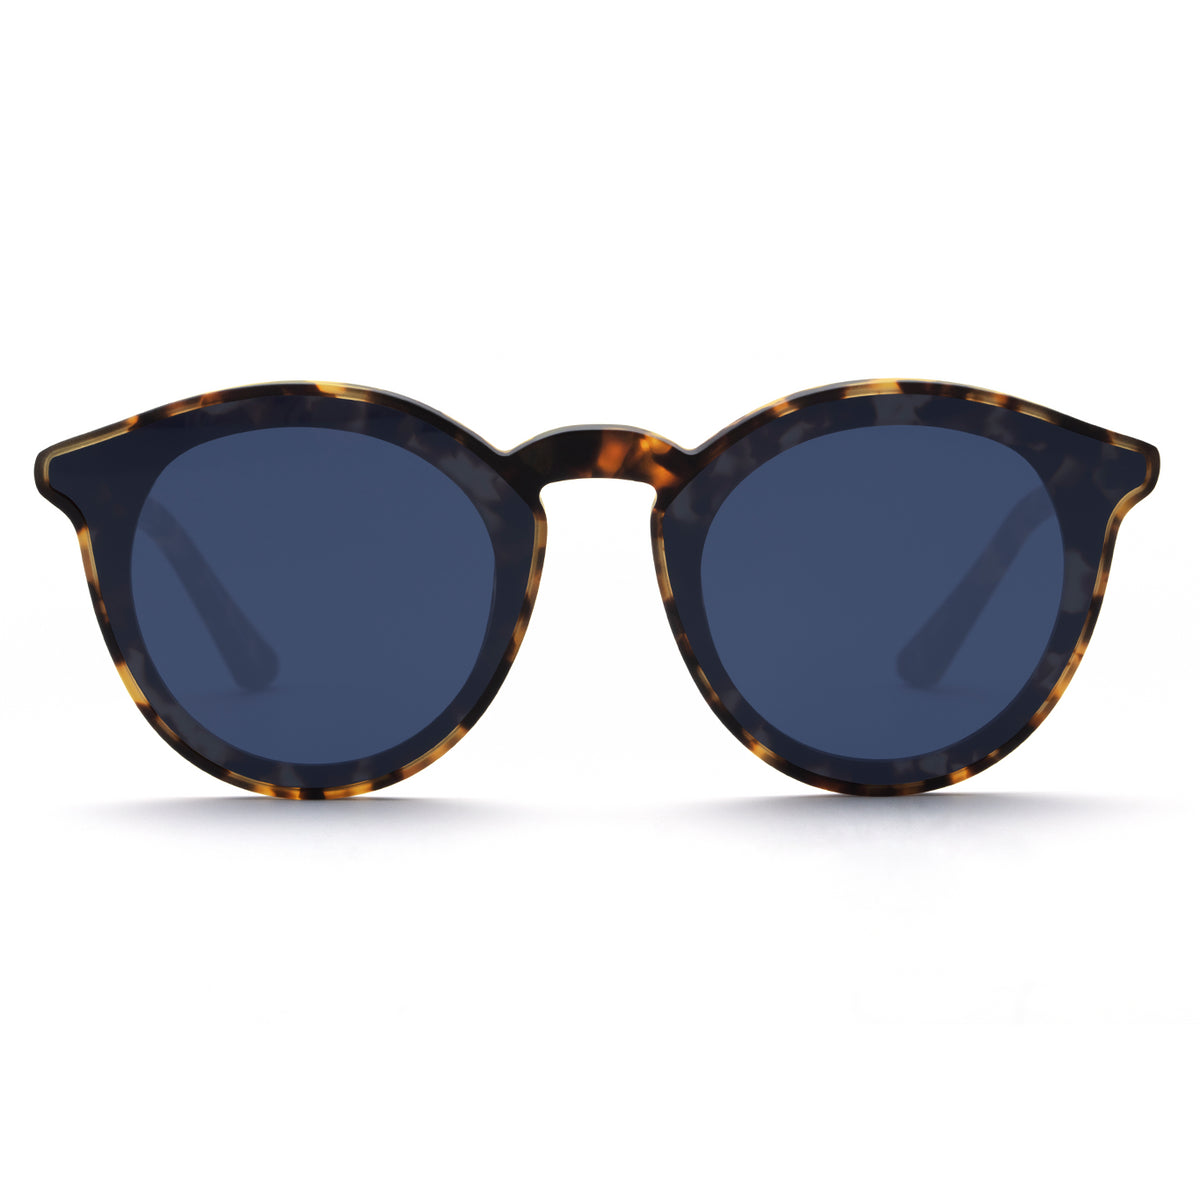 COLLINS NYLON | Matte Bengal handcrafted acetate sunglasses